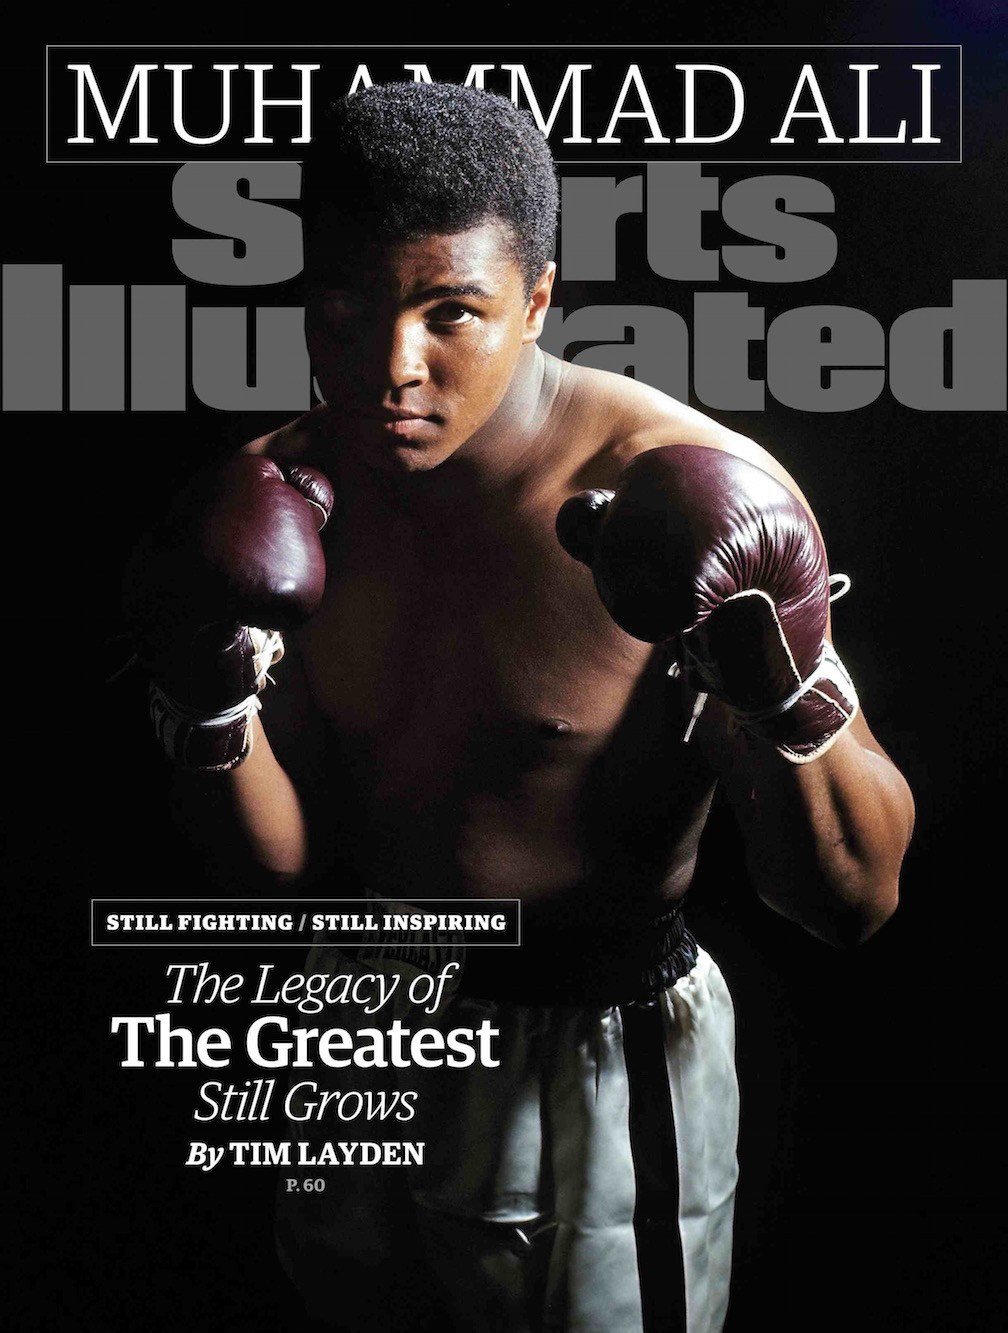 Sports Illustrated's cover for Sept. 30, 2015. Cover photo by Neil Leifer.